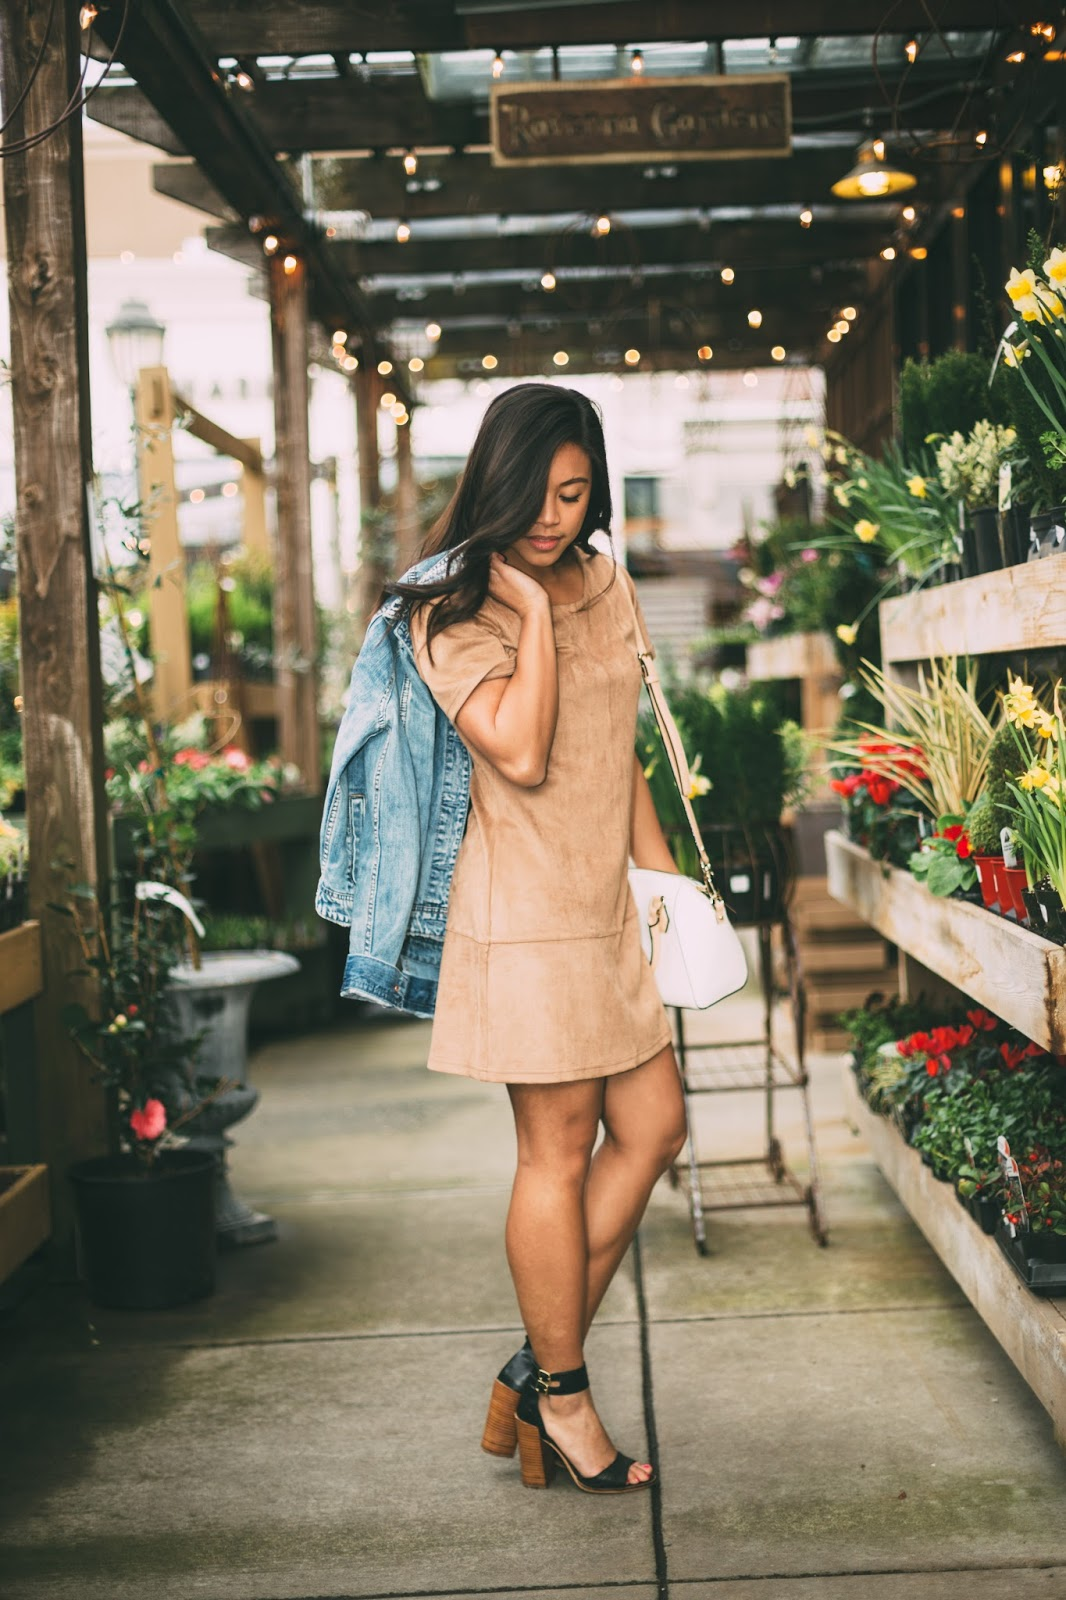 Most Instagram Worthy Seattle Plant Shops to Check Out – Seattle plant shops – plant store in Seattle – Instagrammable places in Seattle – Seattle Instagram spots